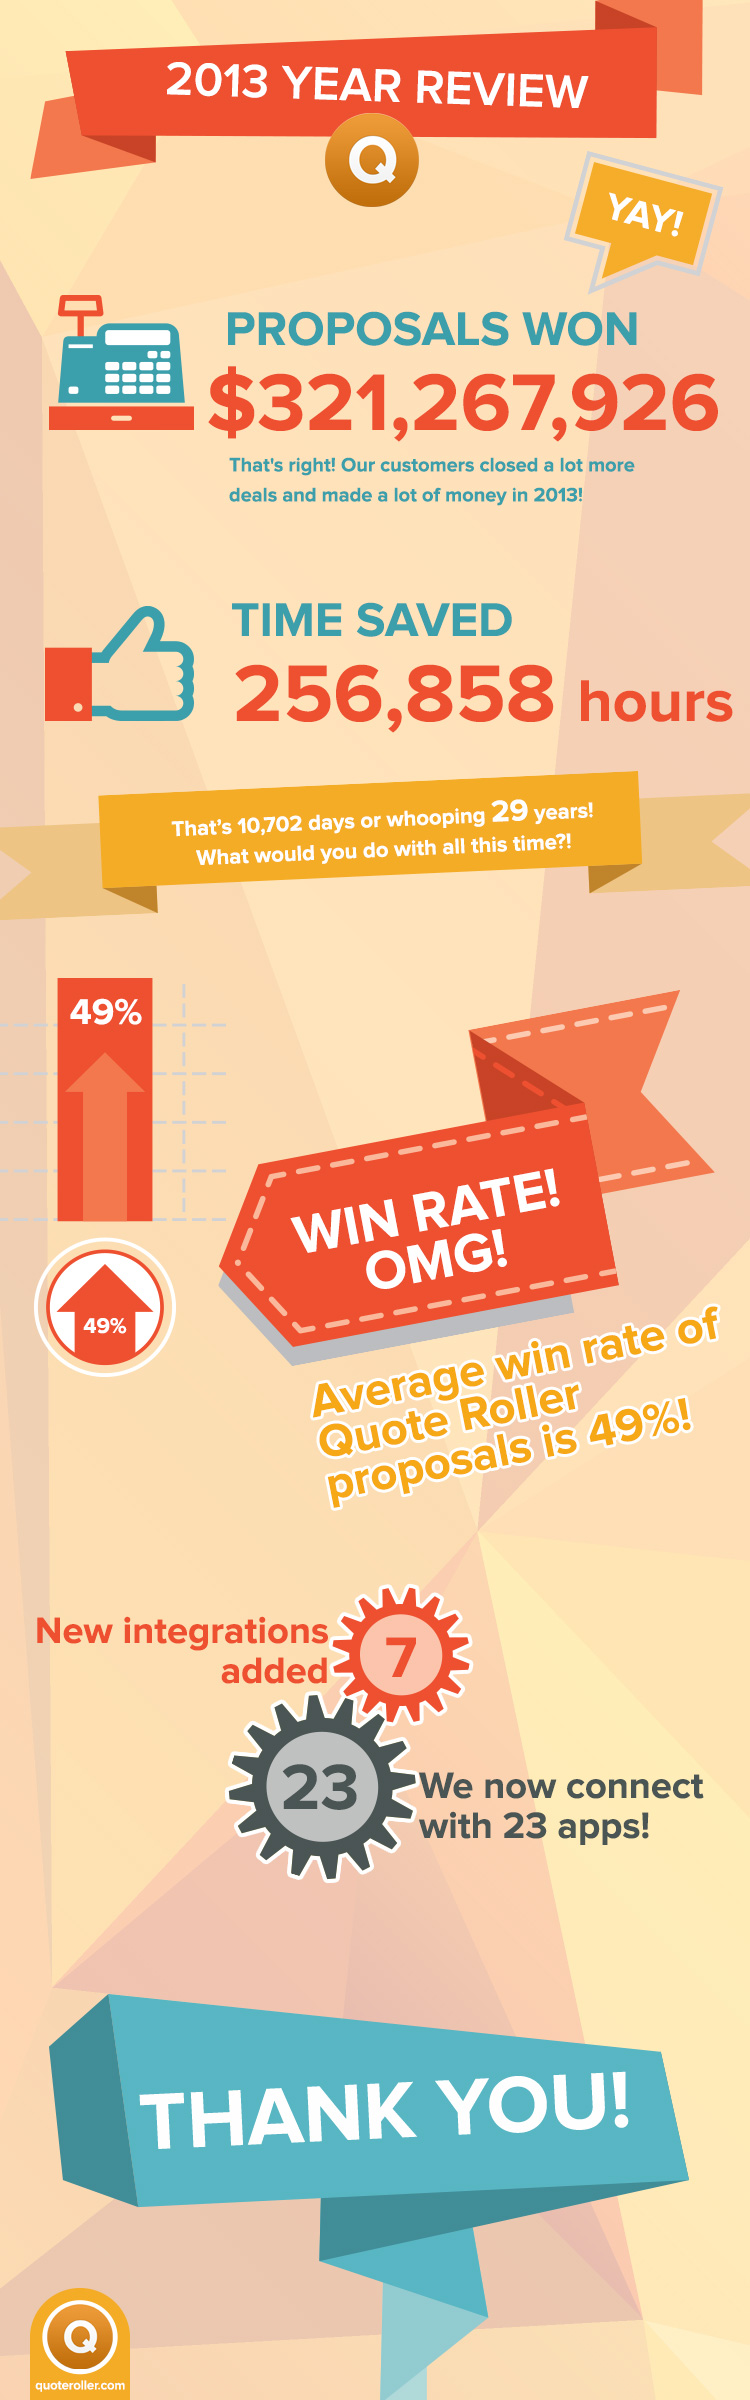 2013 Quote Roller infographic